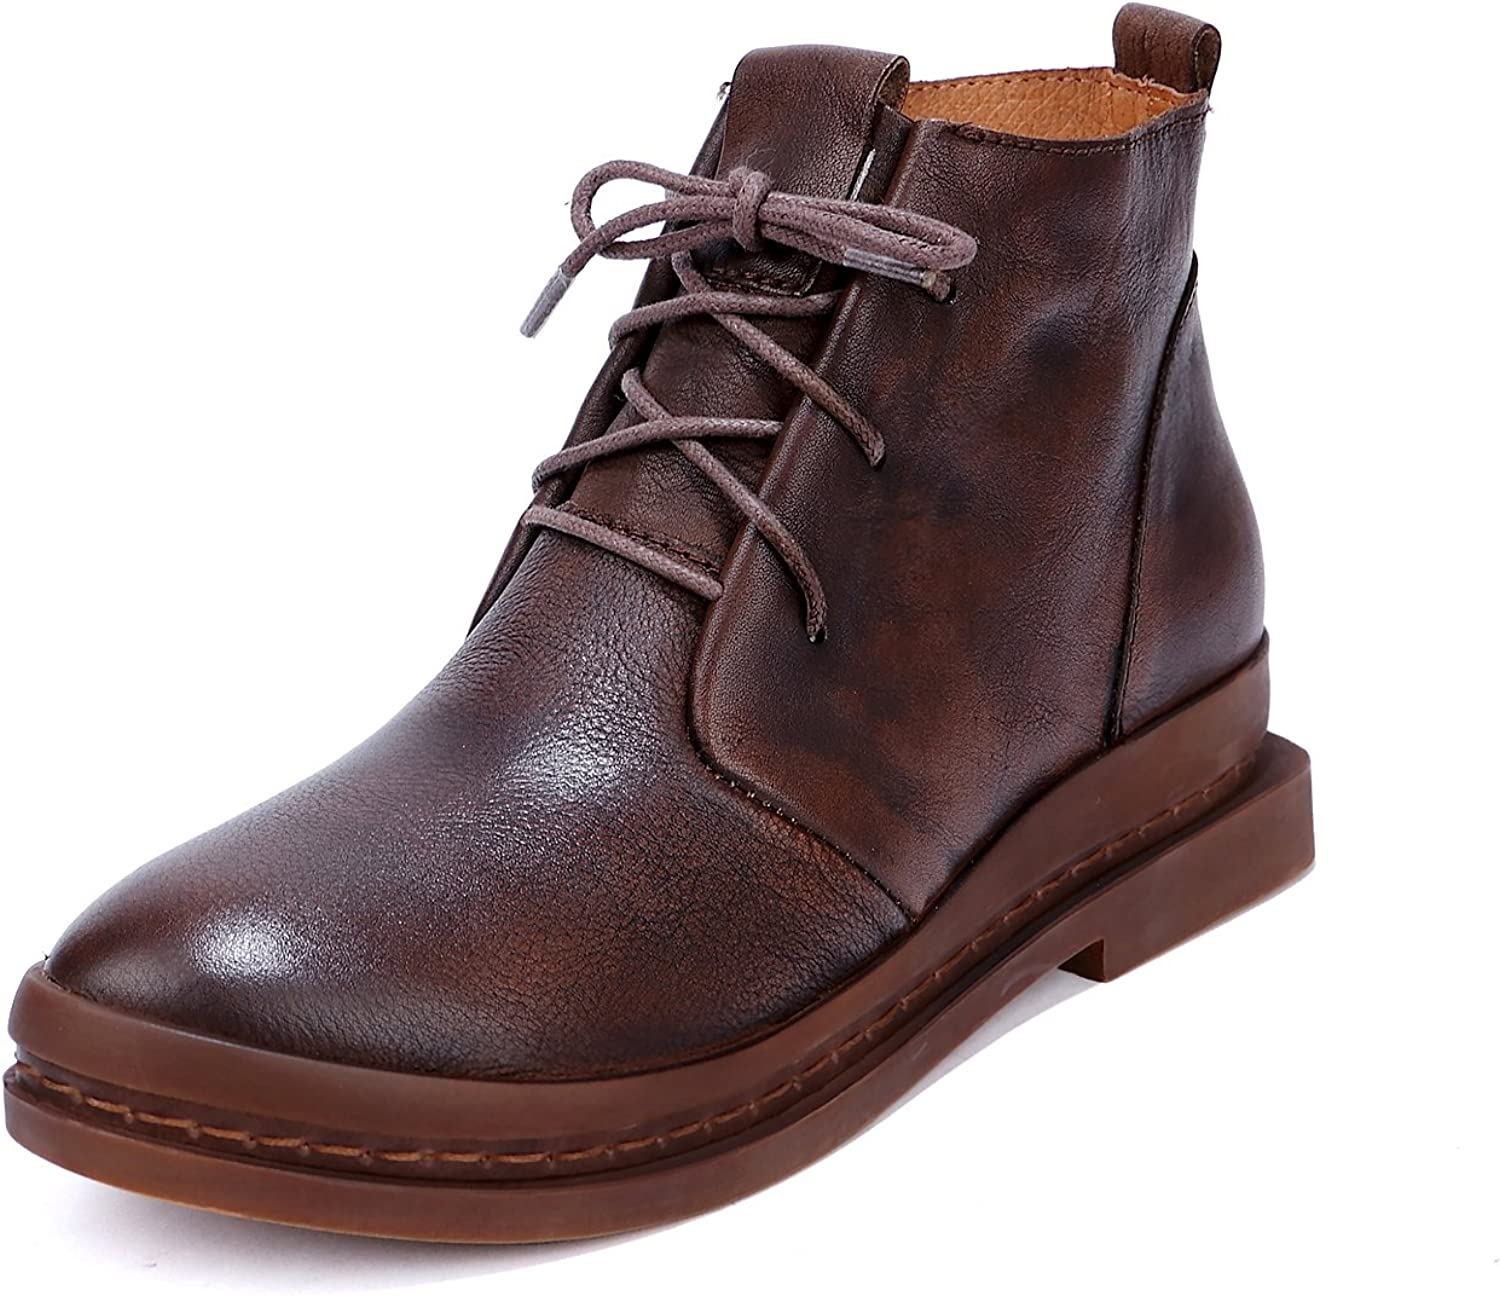 Dwarves Women's Handmade Retro Leather Martin Boots Lace Up Comfortable Walking Boots Coffee Black